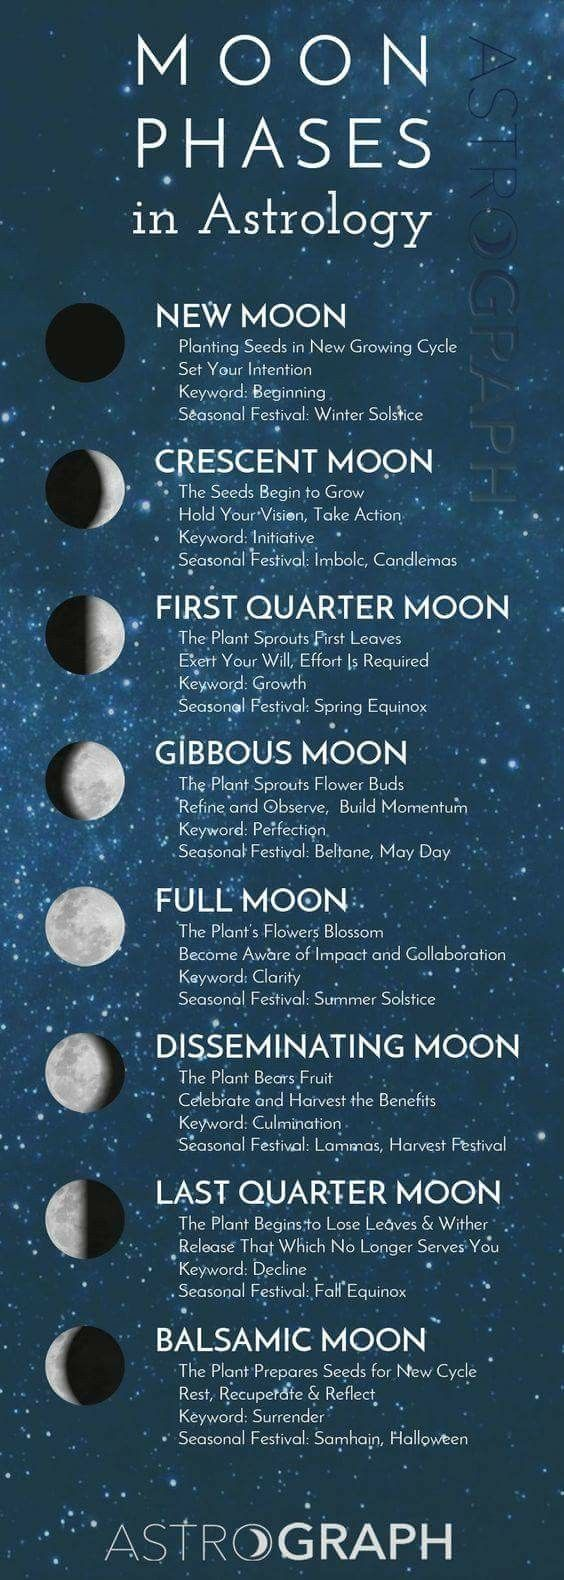 Moon Phases in Astrology